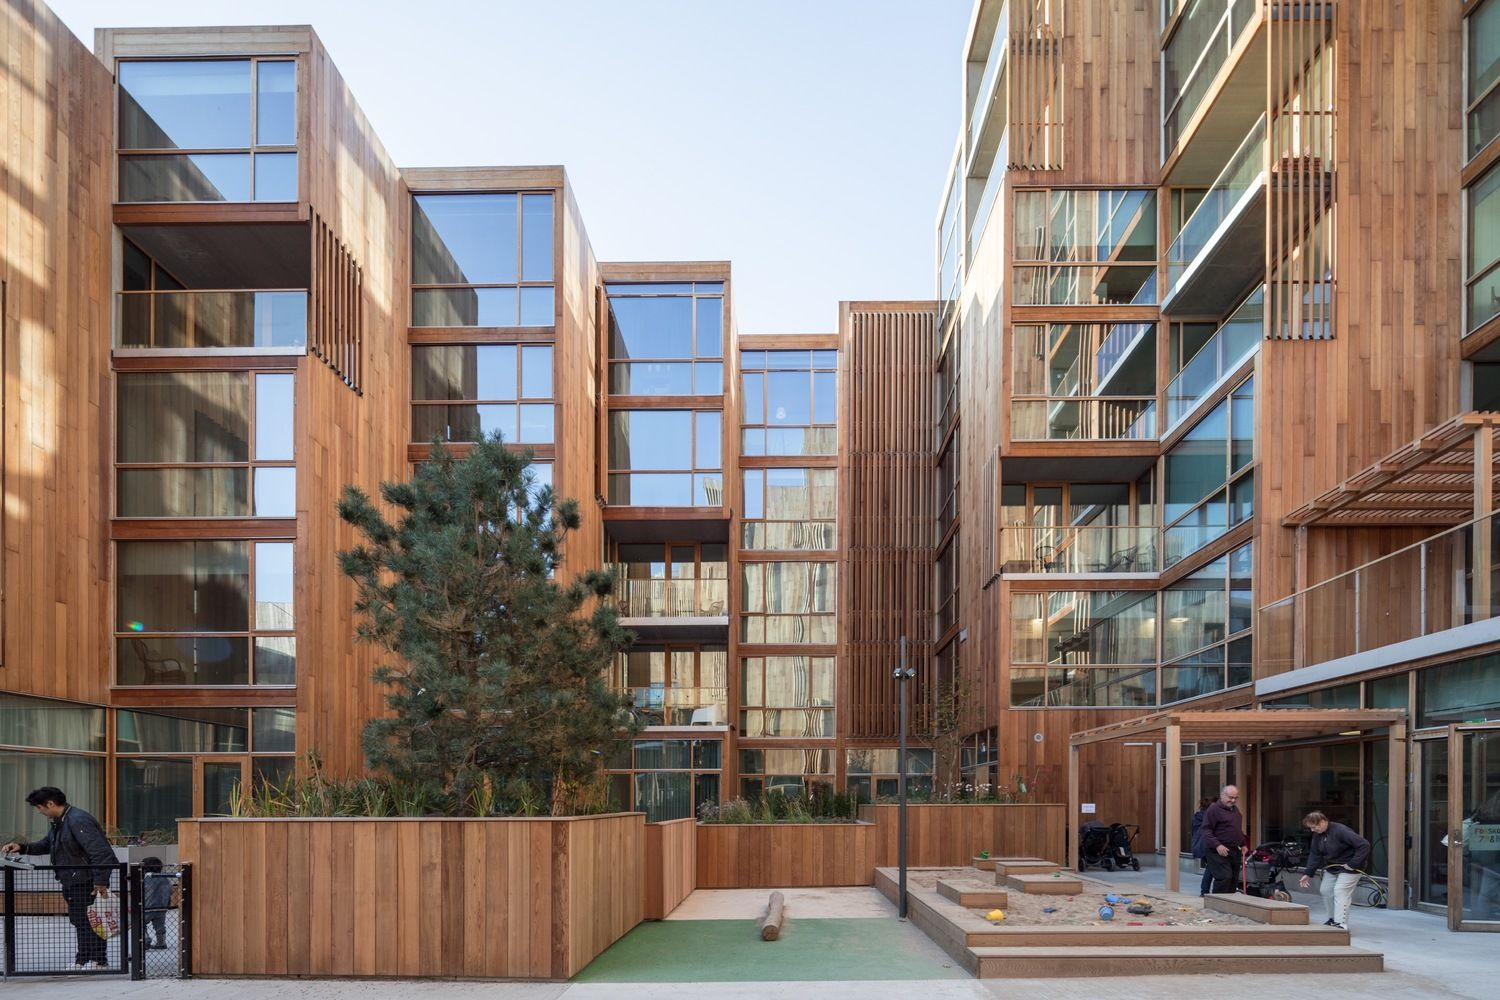 Gallery Of 79 Park Big 4 Apartment Architecture Architecture Architecture Building